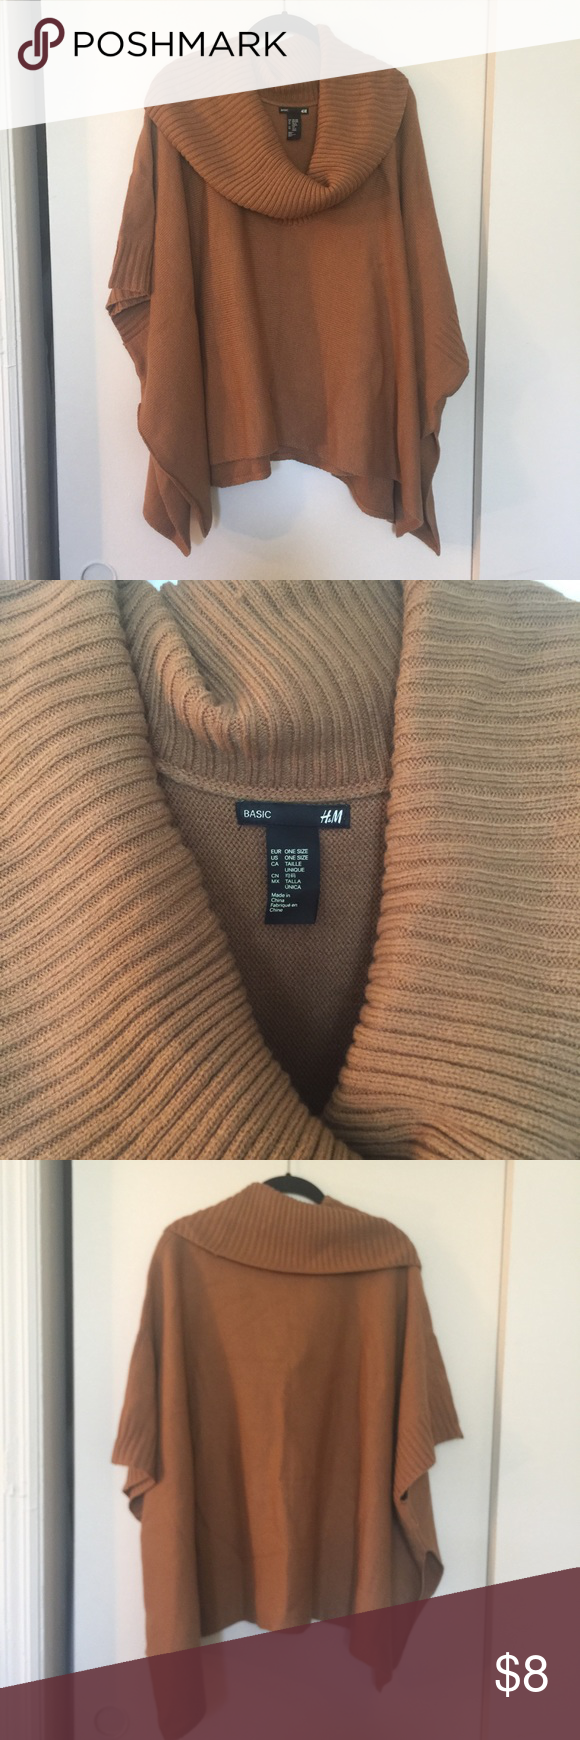 Tan poncho sweater Tan pull over poncho sweater . Like new condition H&M Sweaters Shrugs & Ponchos